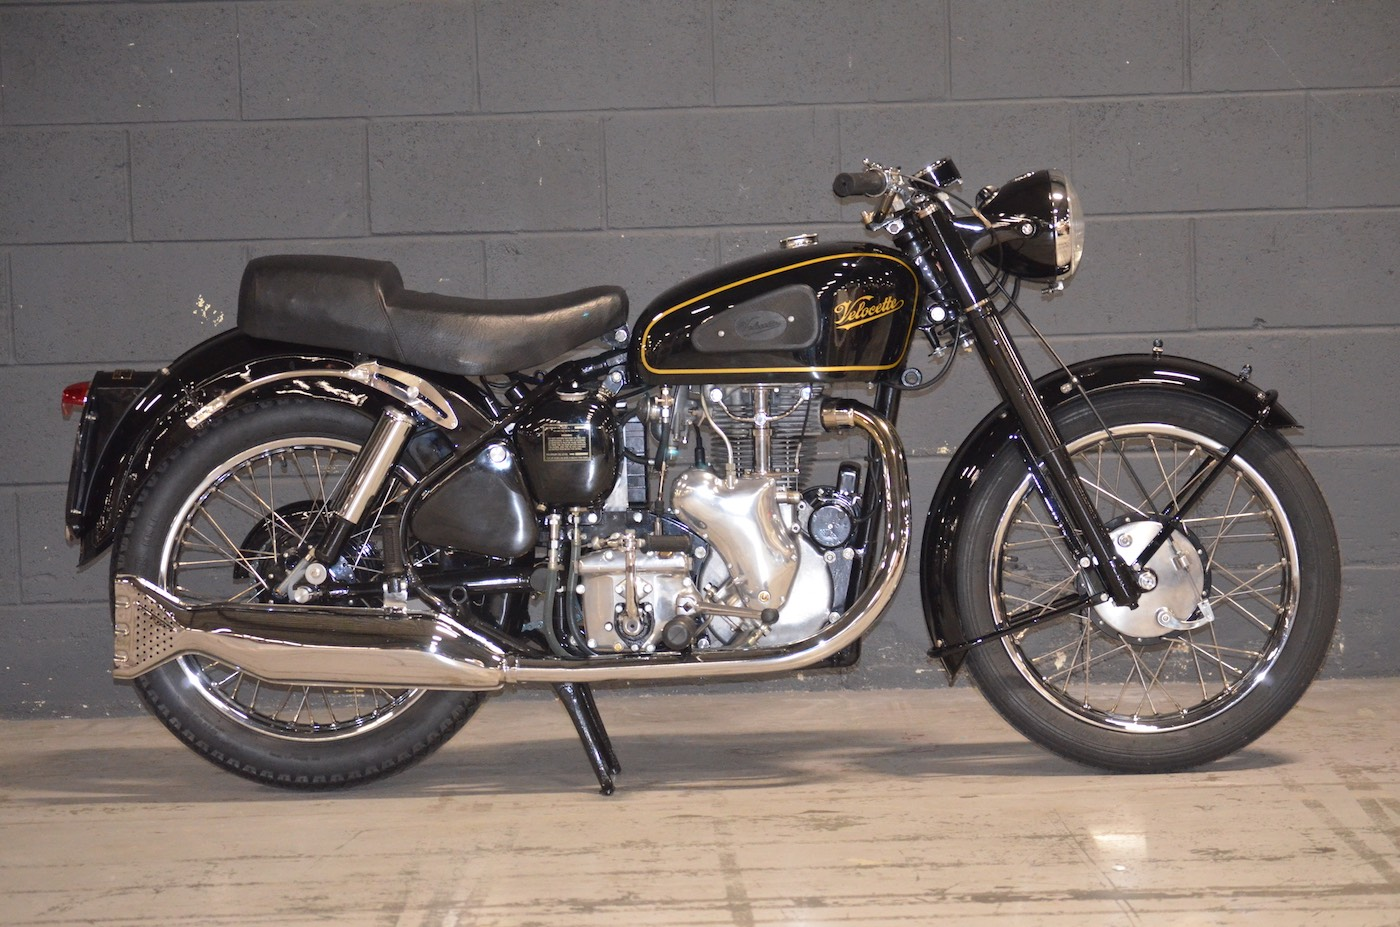 1954 Velocette MSS right side